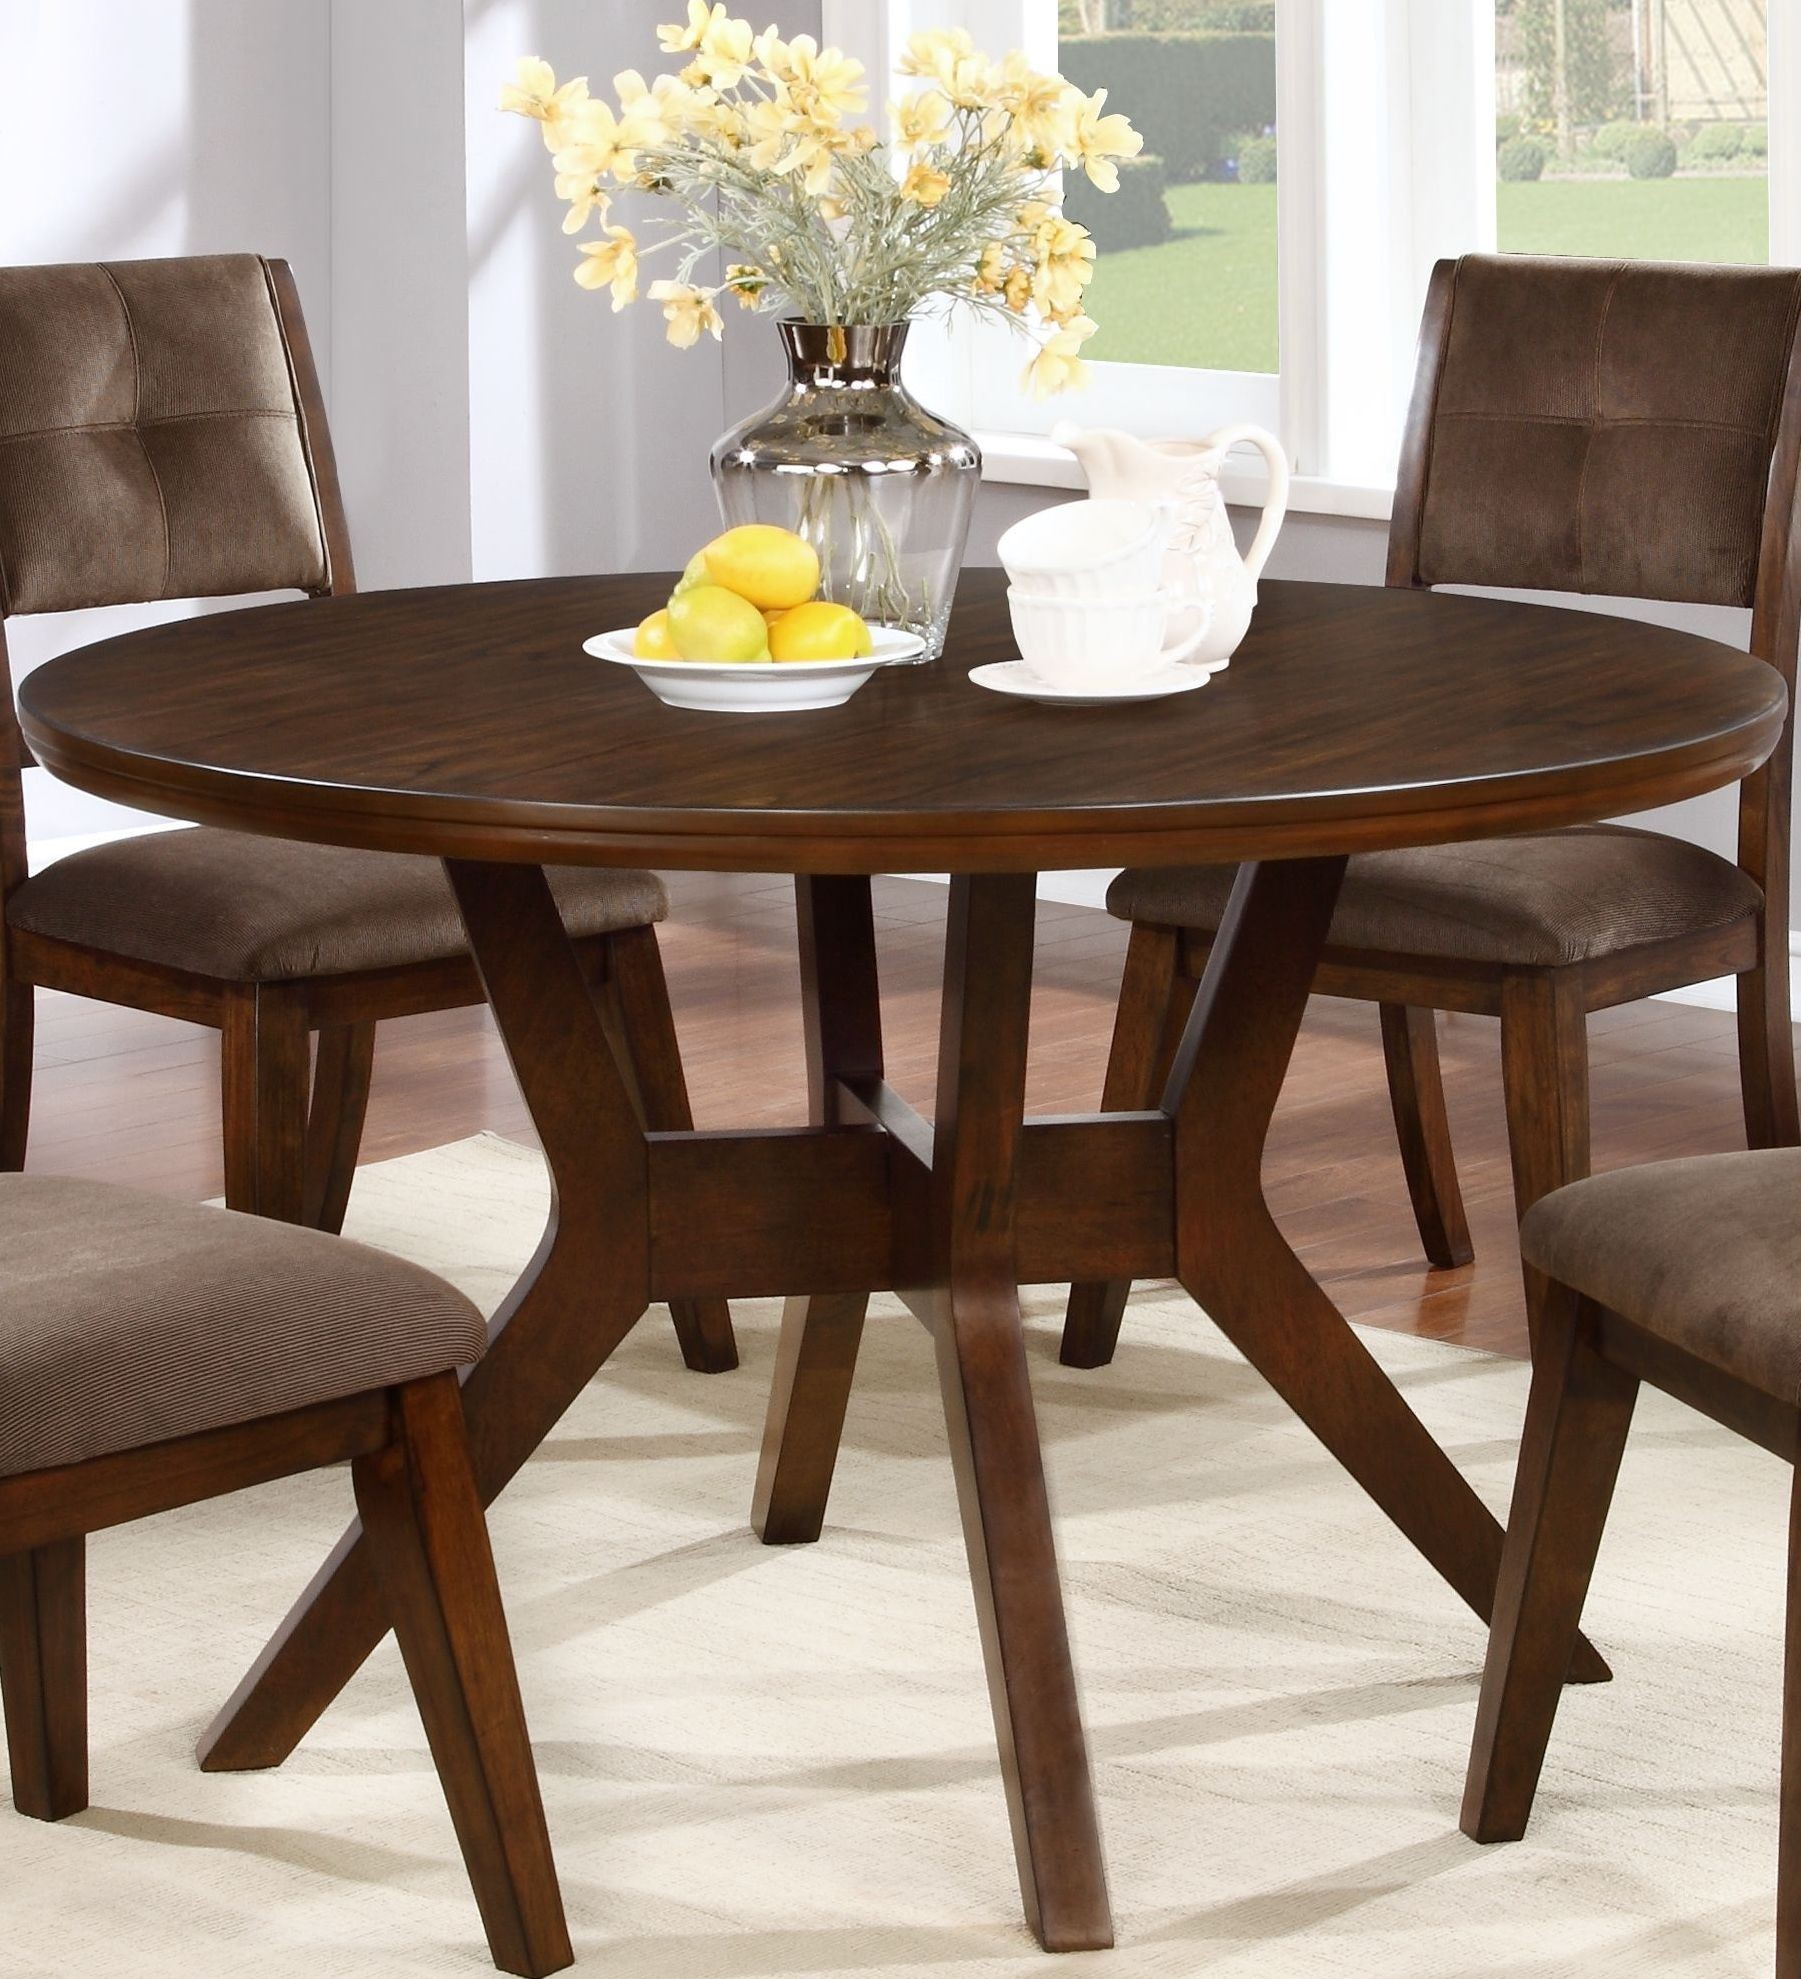 porter walnut round dining table from new classic coleman furniture. Black Bedroom Furniture Sets. Home Design Ideas